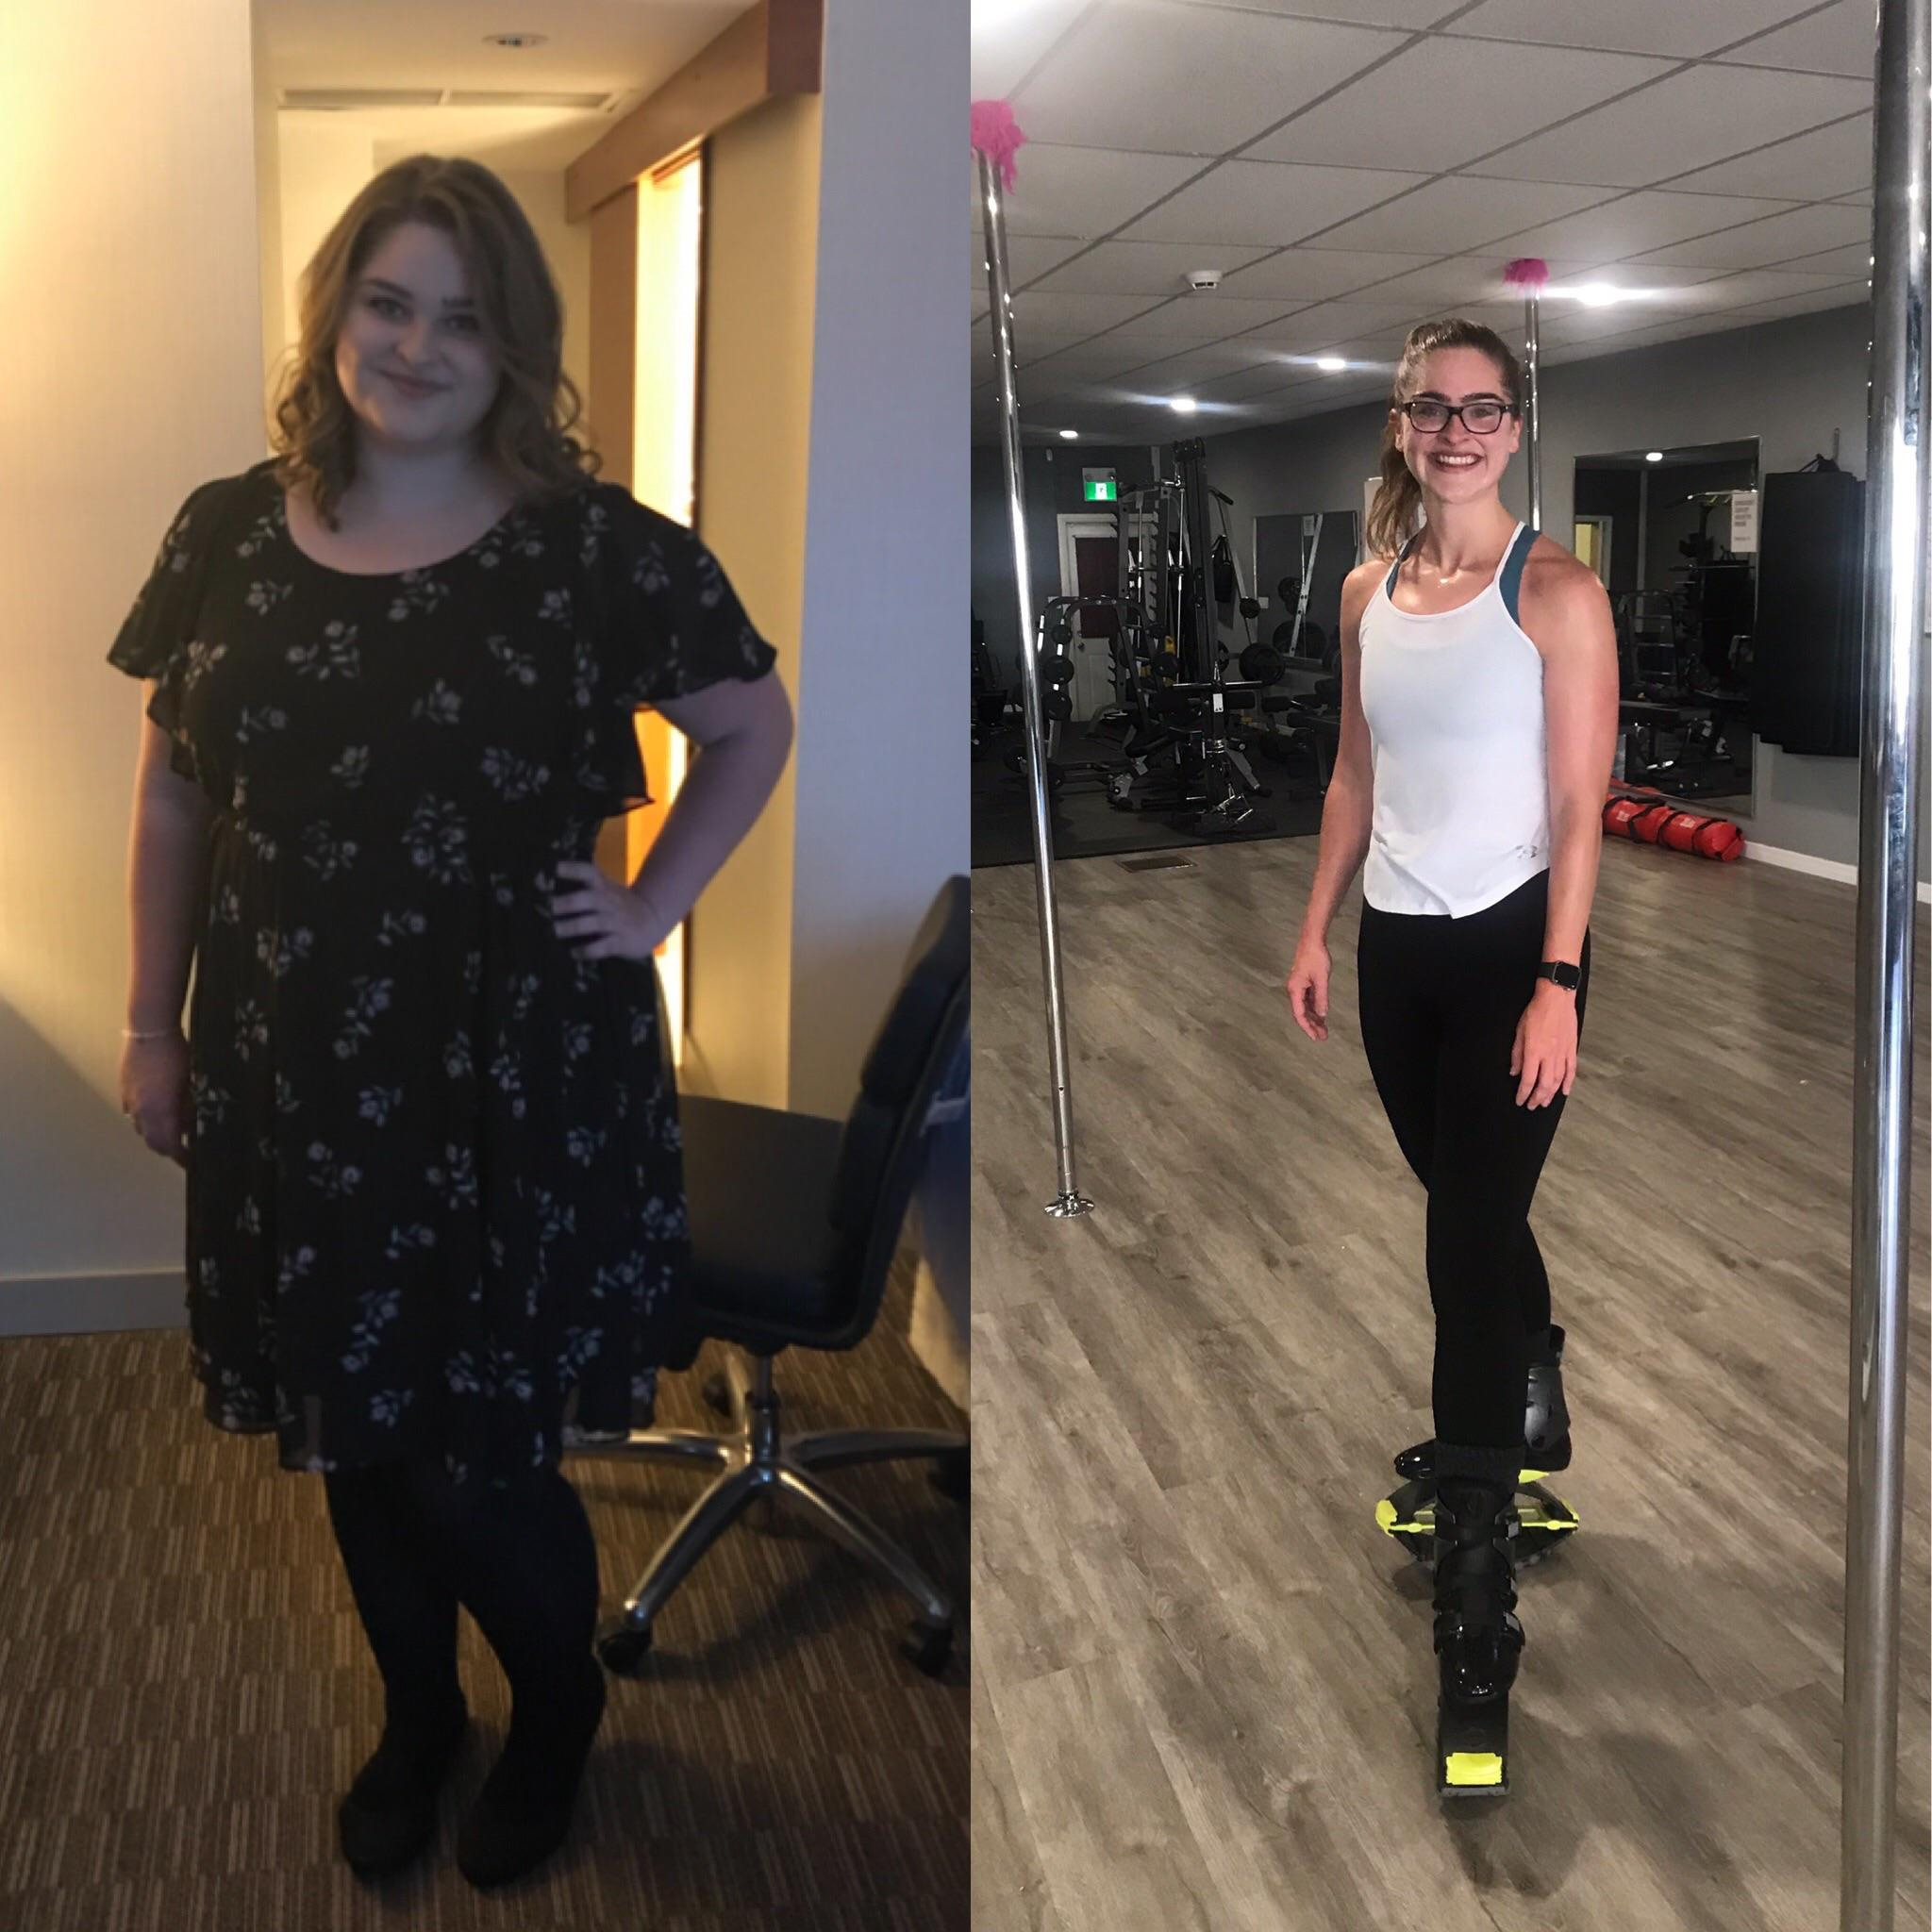 5'11 Female 135 lbs Weight Loss Before and After 300 lbs to 165 lbs